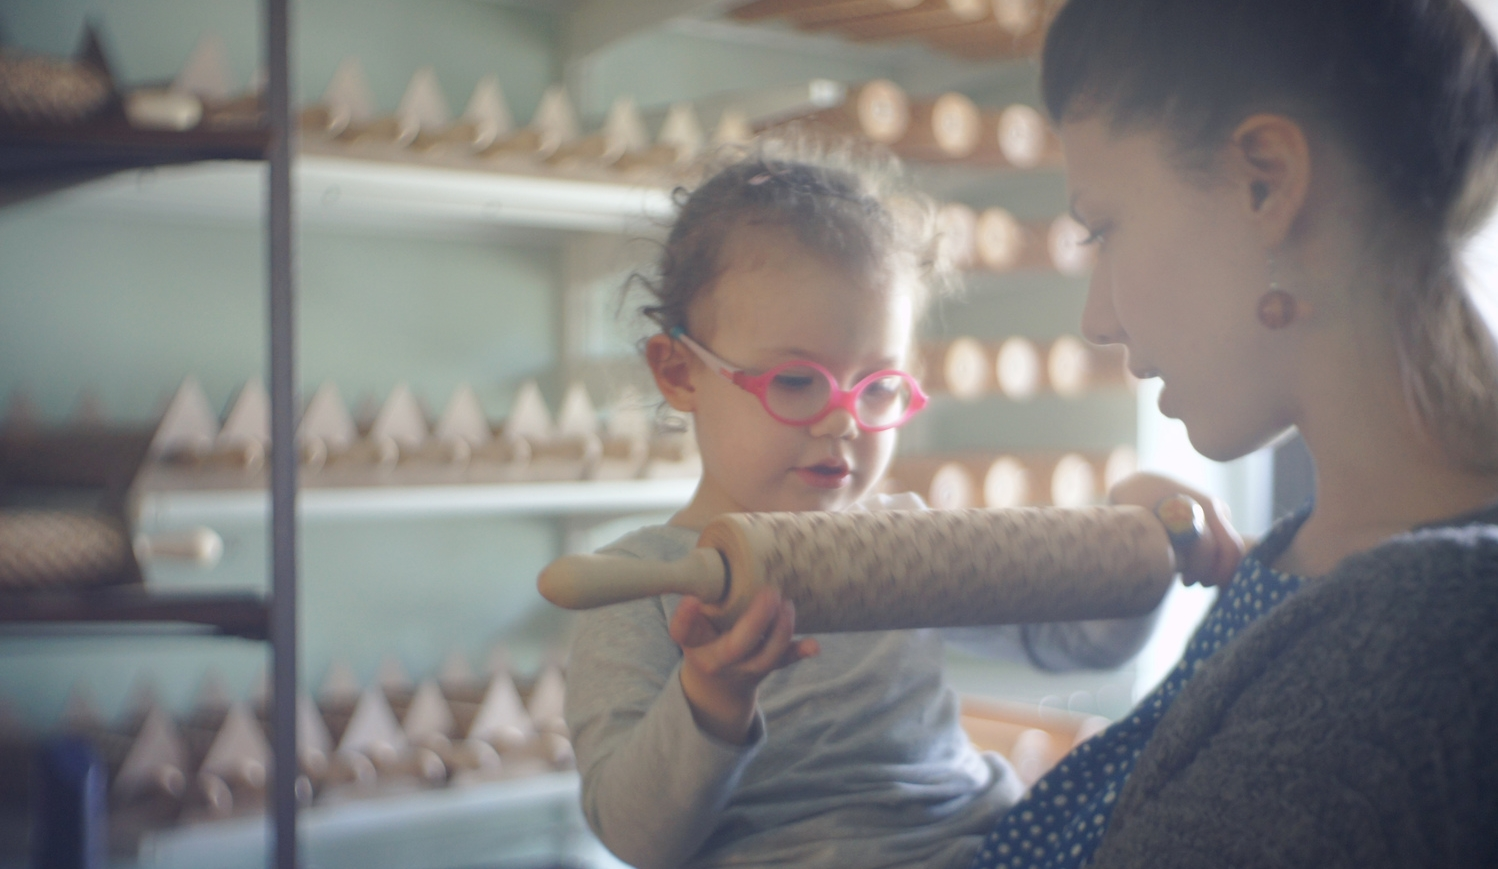 My niece inspecting the quality of one of my cats rolling pin